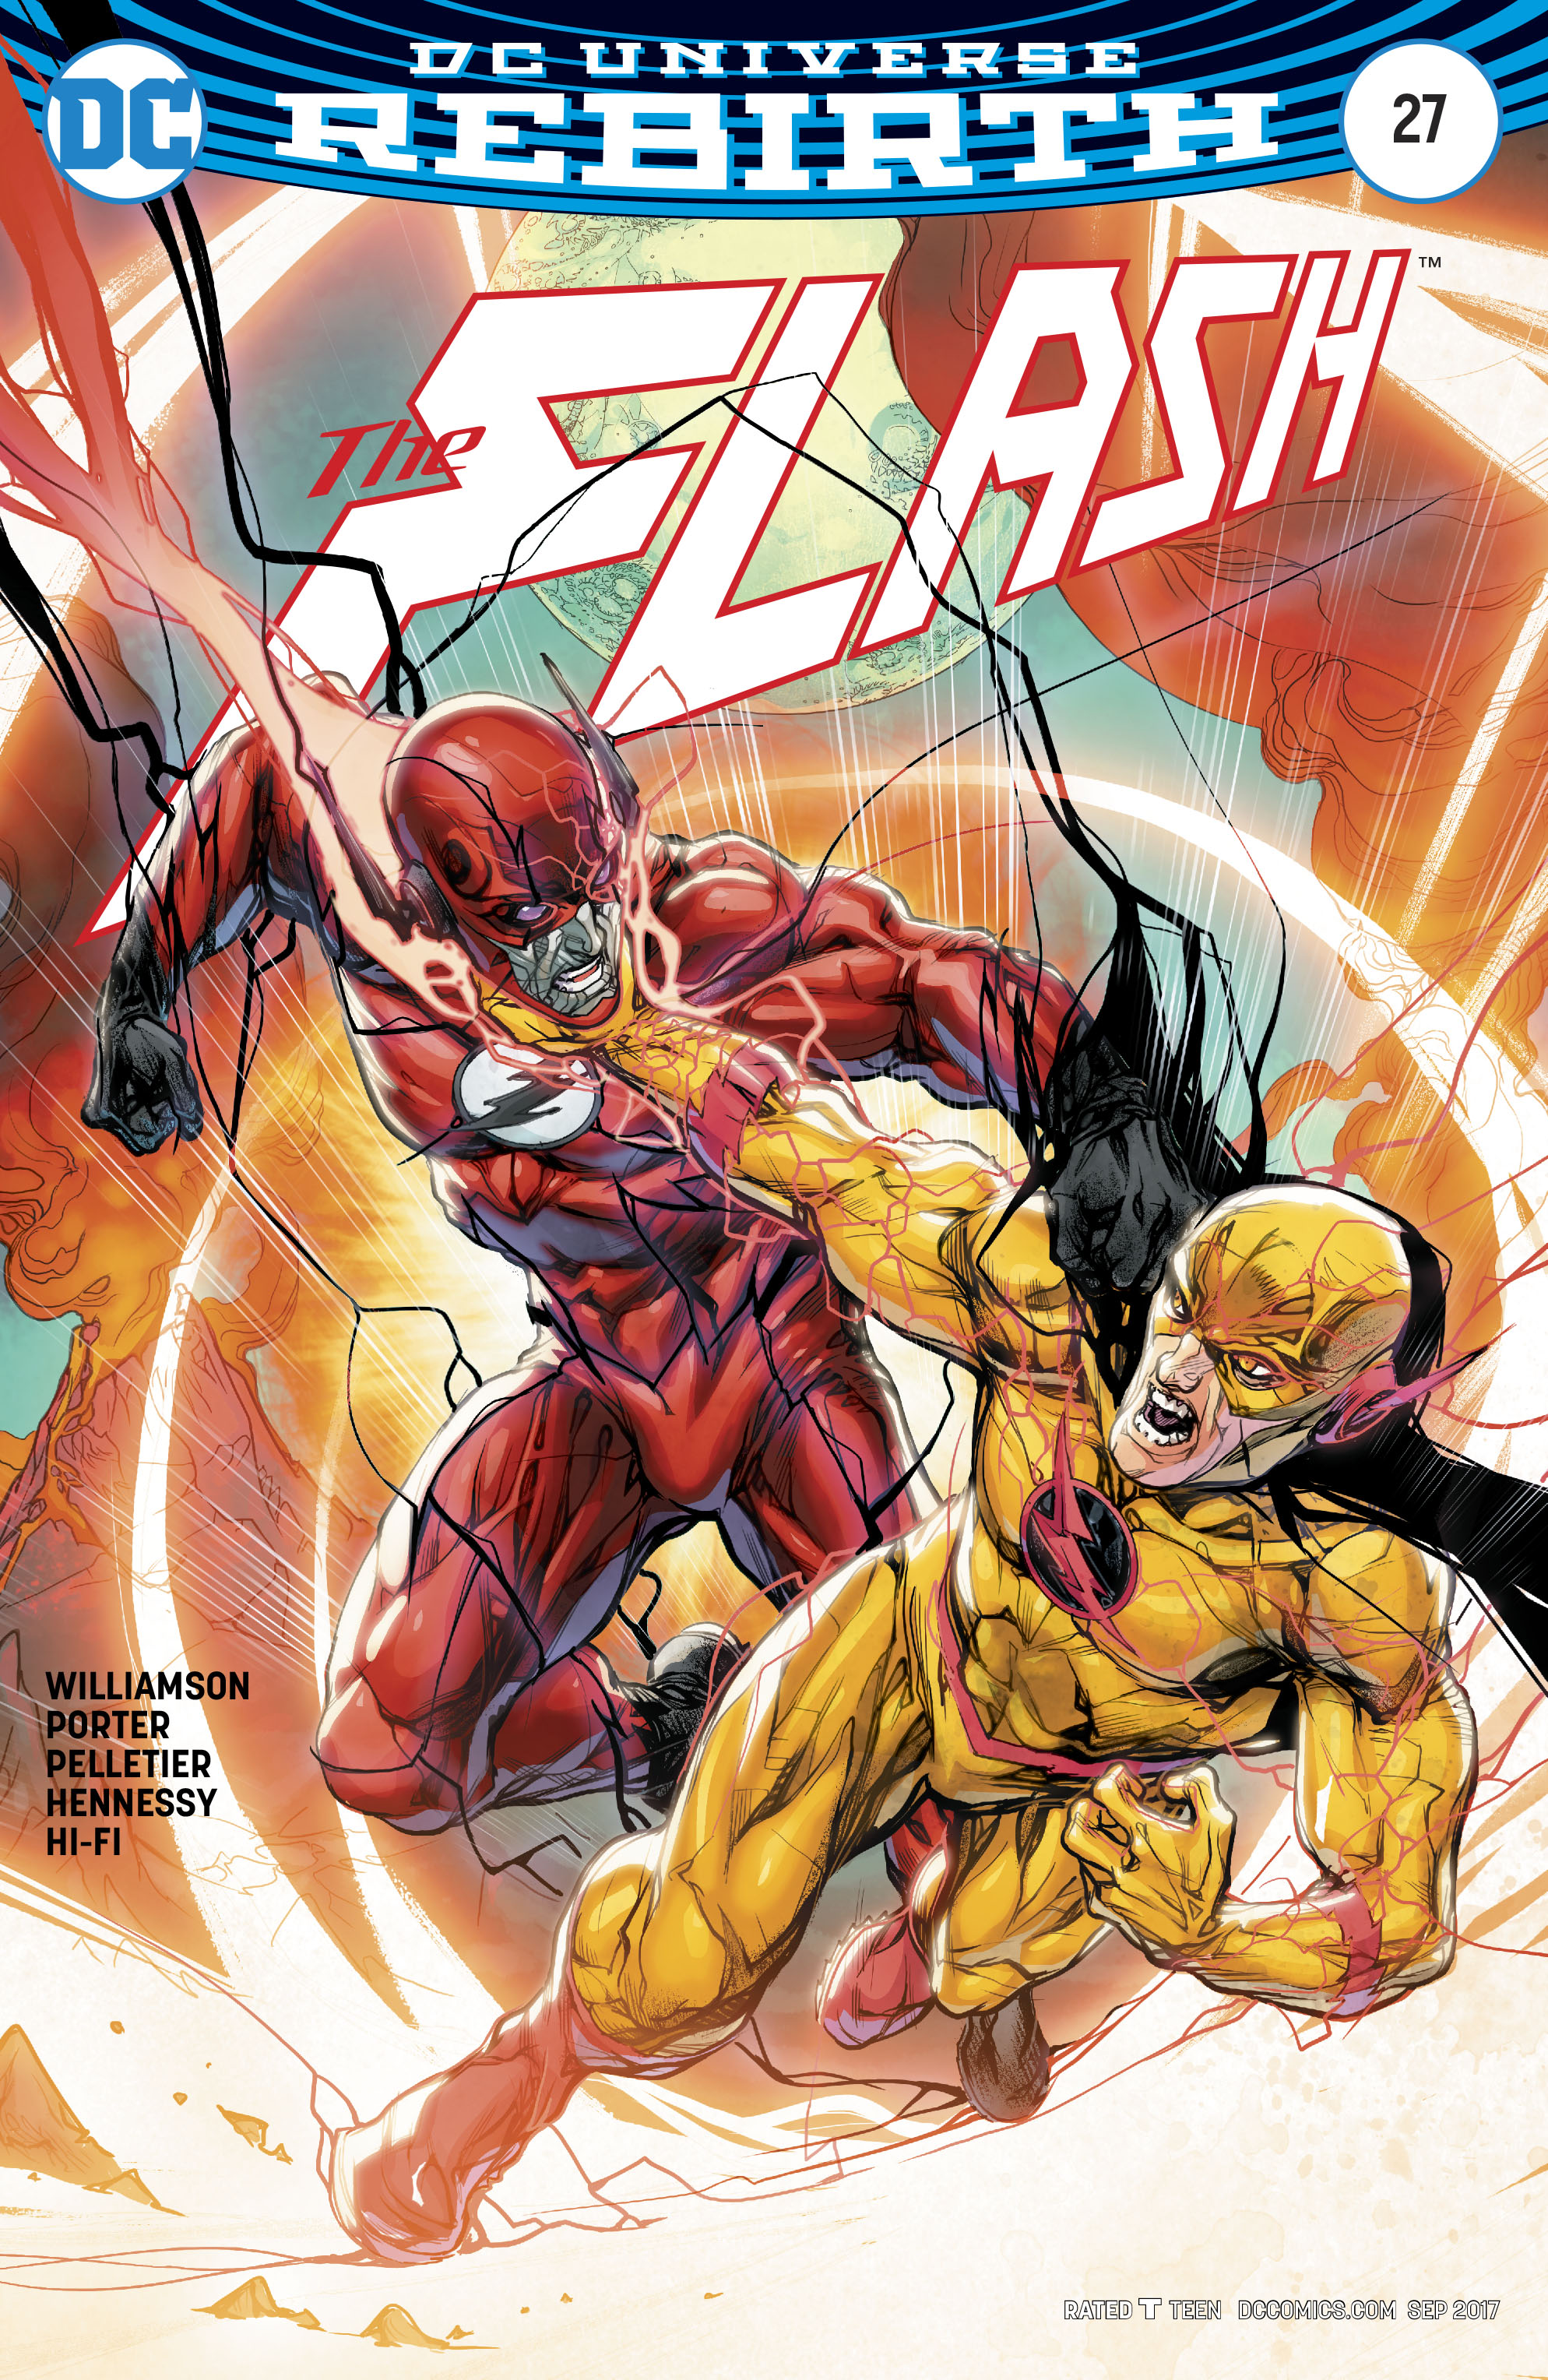 Dc Comics Rebirth Spoilers The Flash 27 Literally Has Everything Change With Iris Allen Wally West Kid Flash Eobard Thawne Reverse Flash Inside Pulse